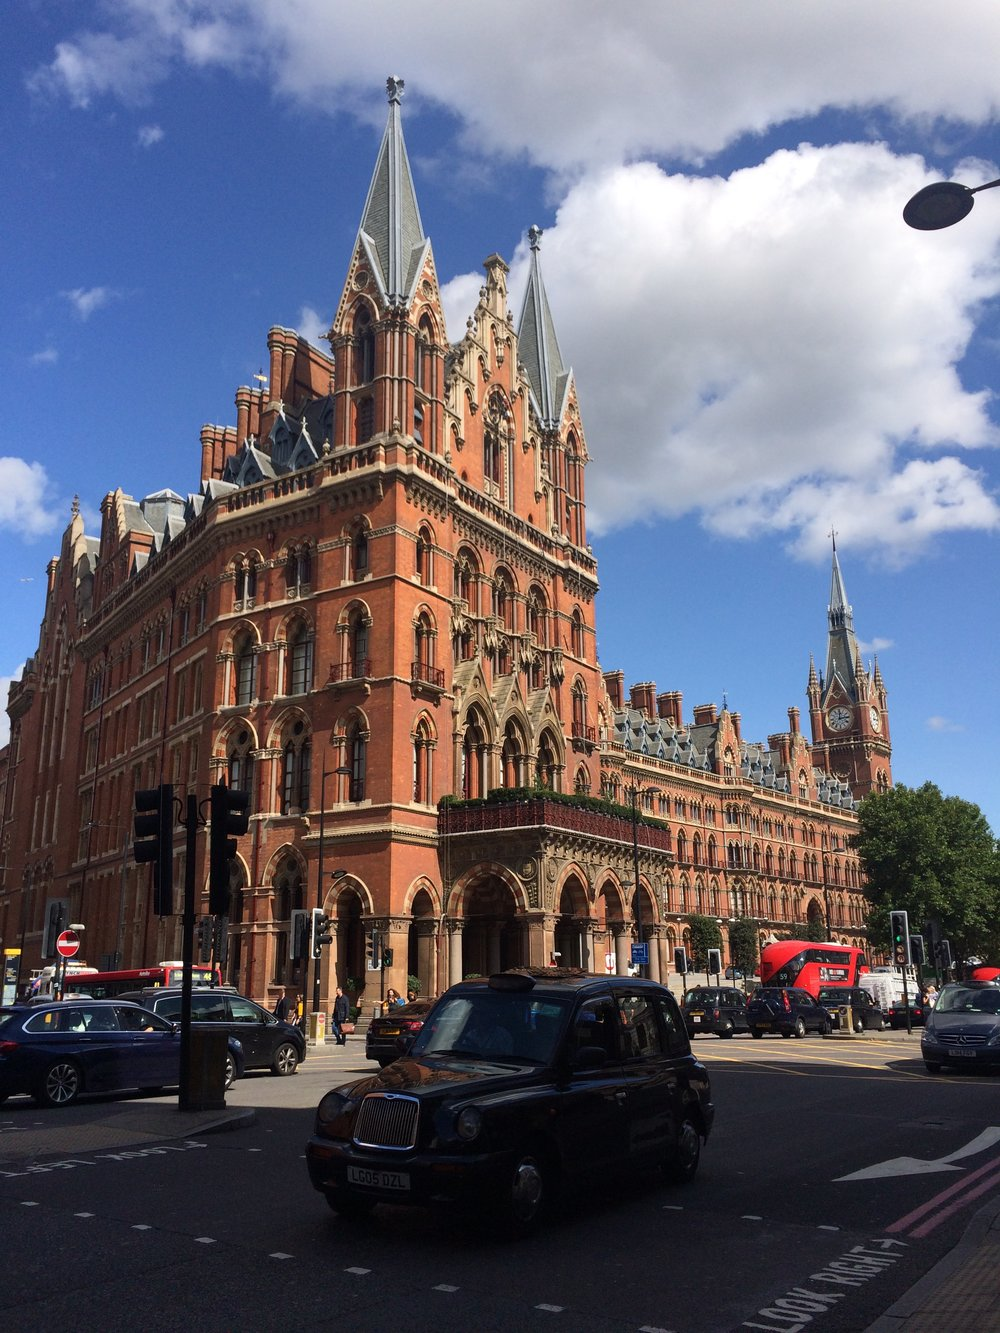 St. Pancras Station on a bright, sunny day (Is this really London?!?)